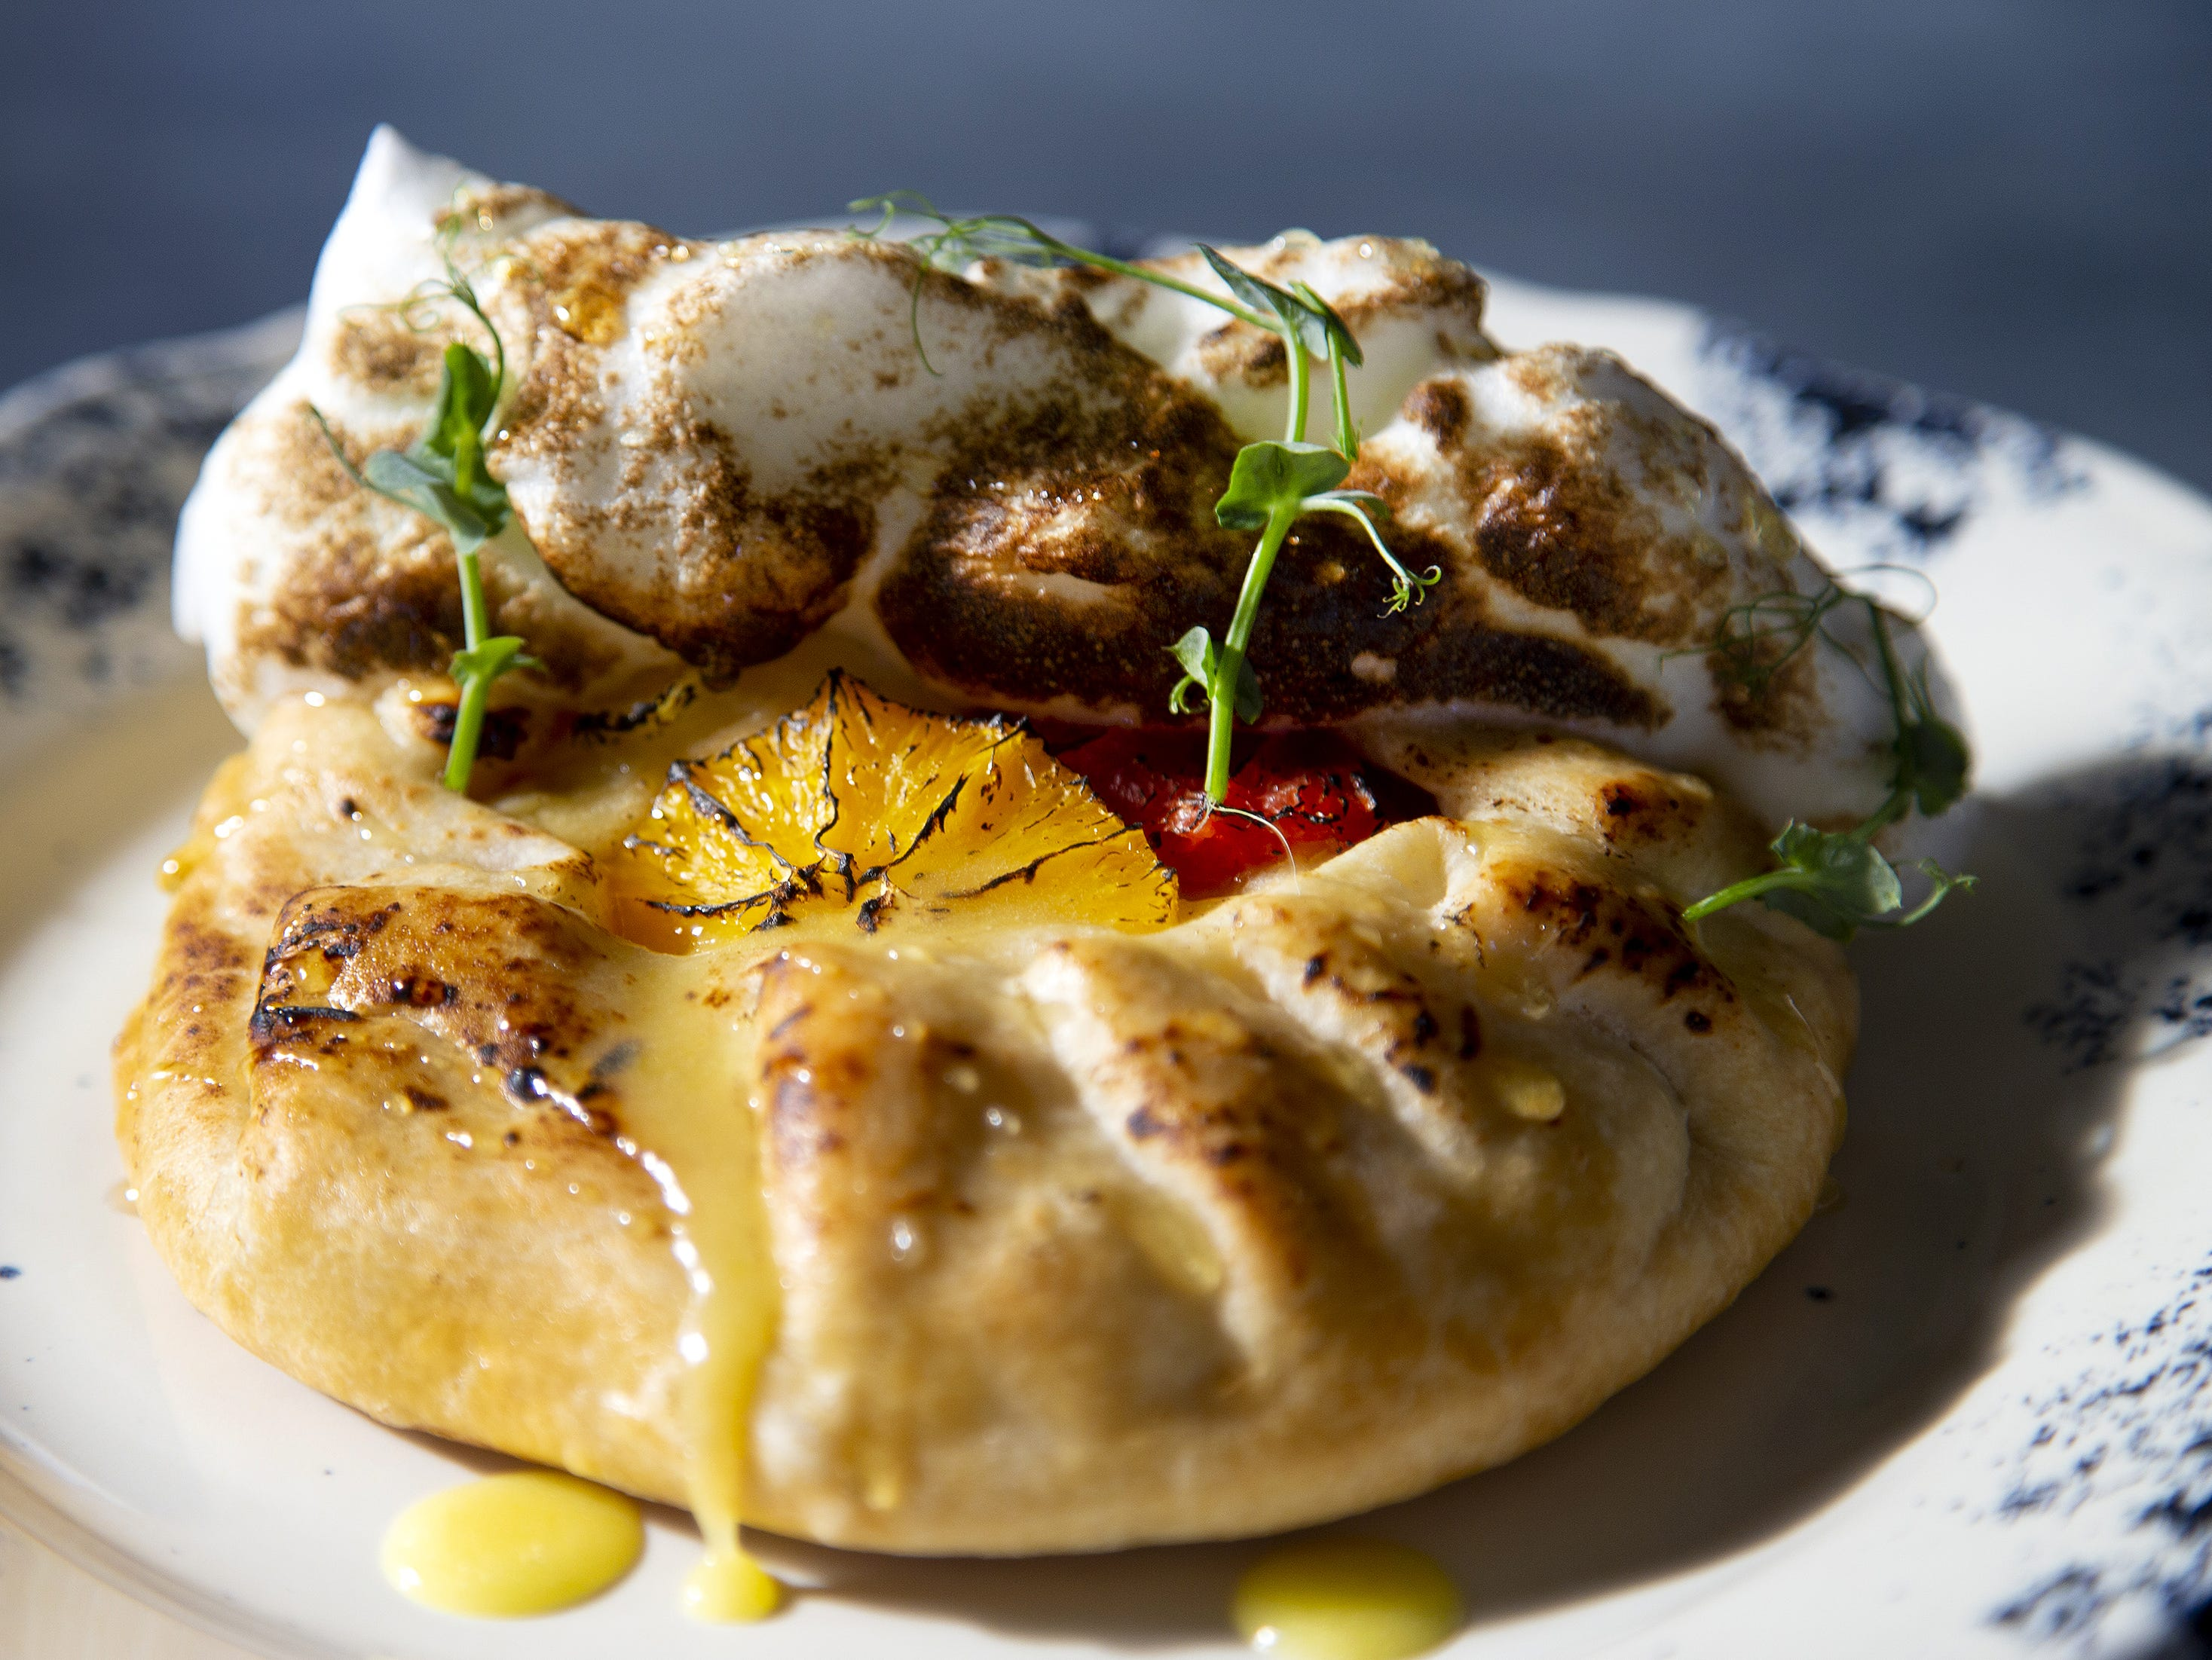 Citrus crostata by The Larder + The Delta, a new downtown Southern-influenced restaurant from Stephen Jones.